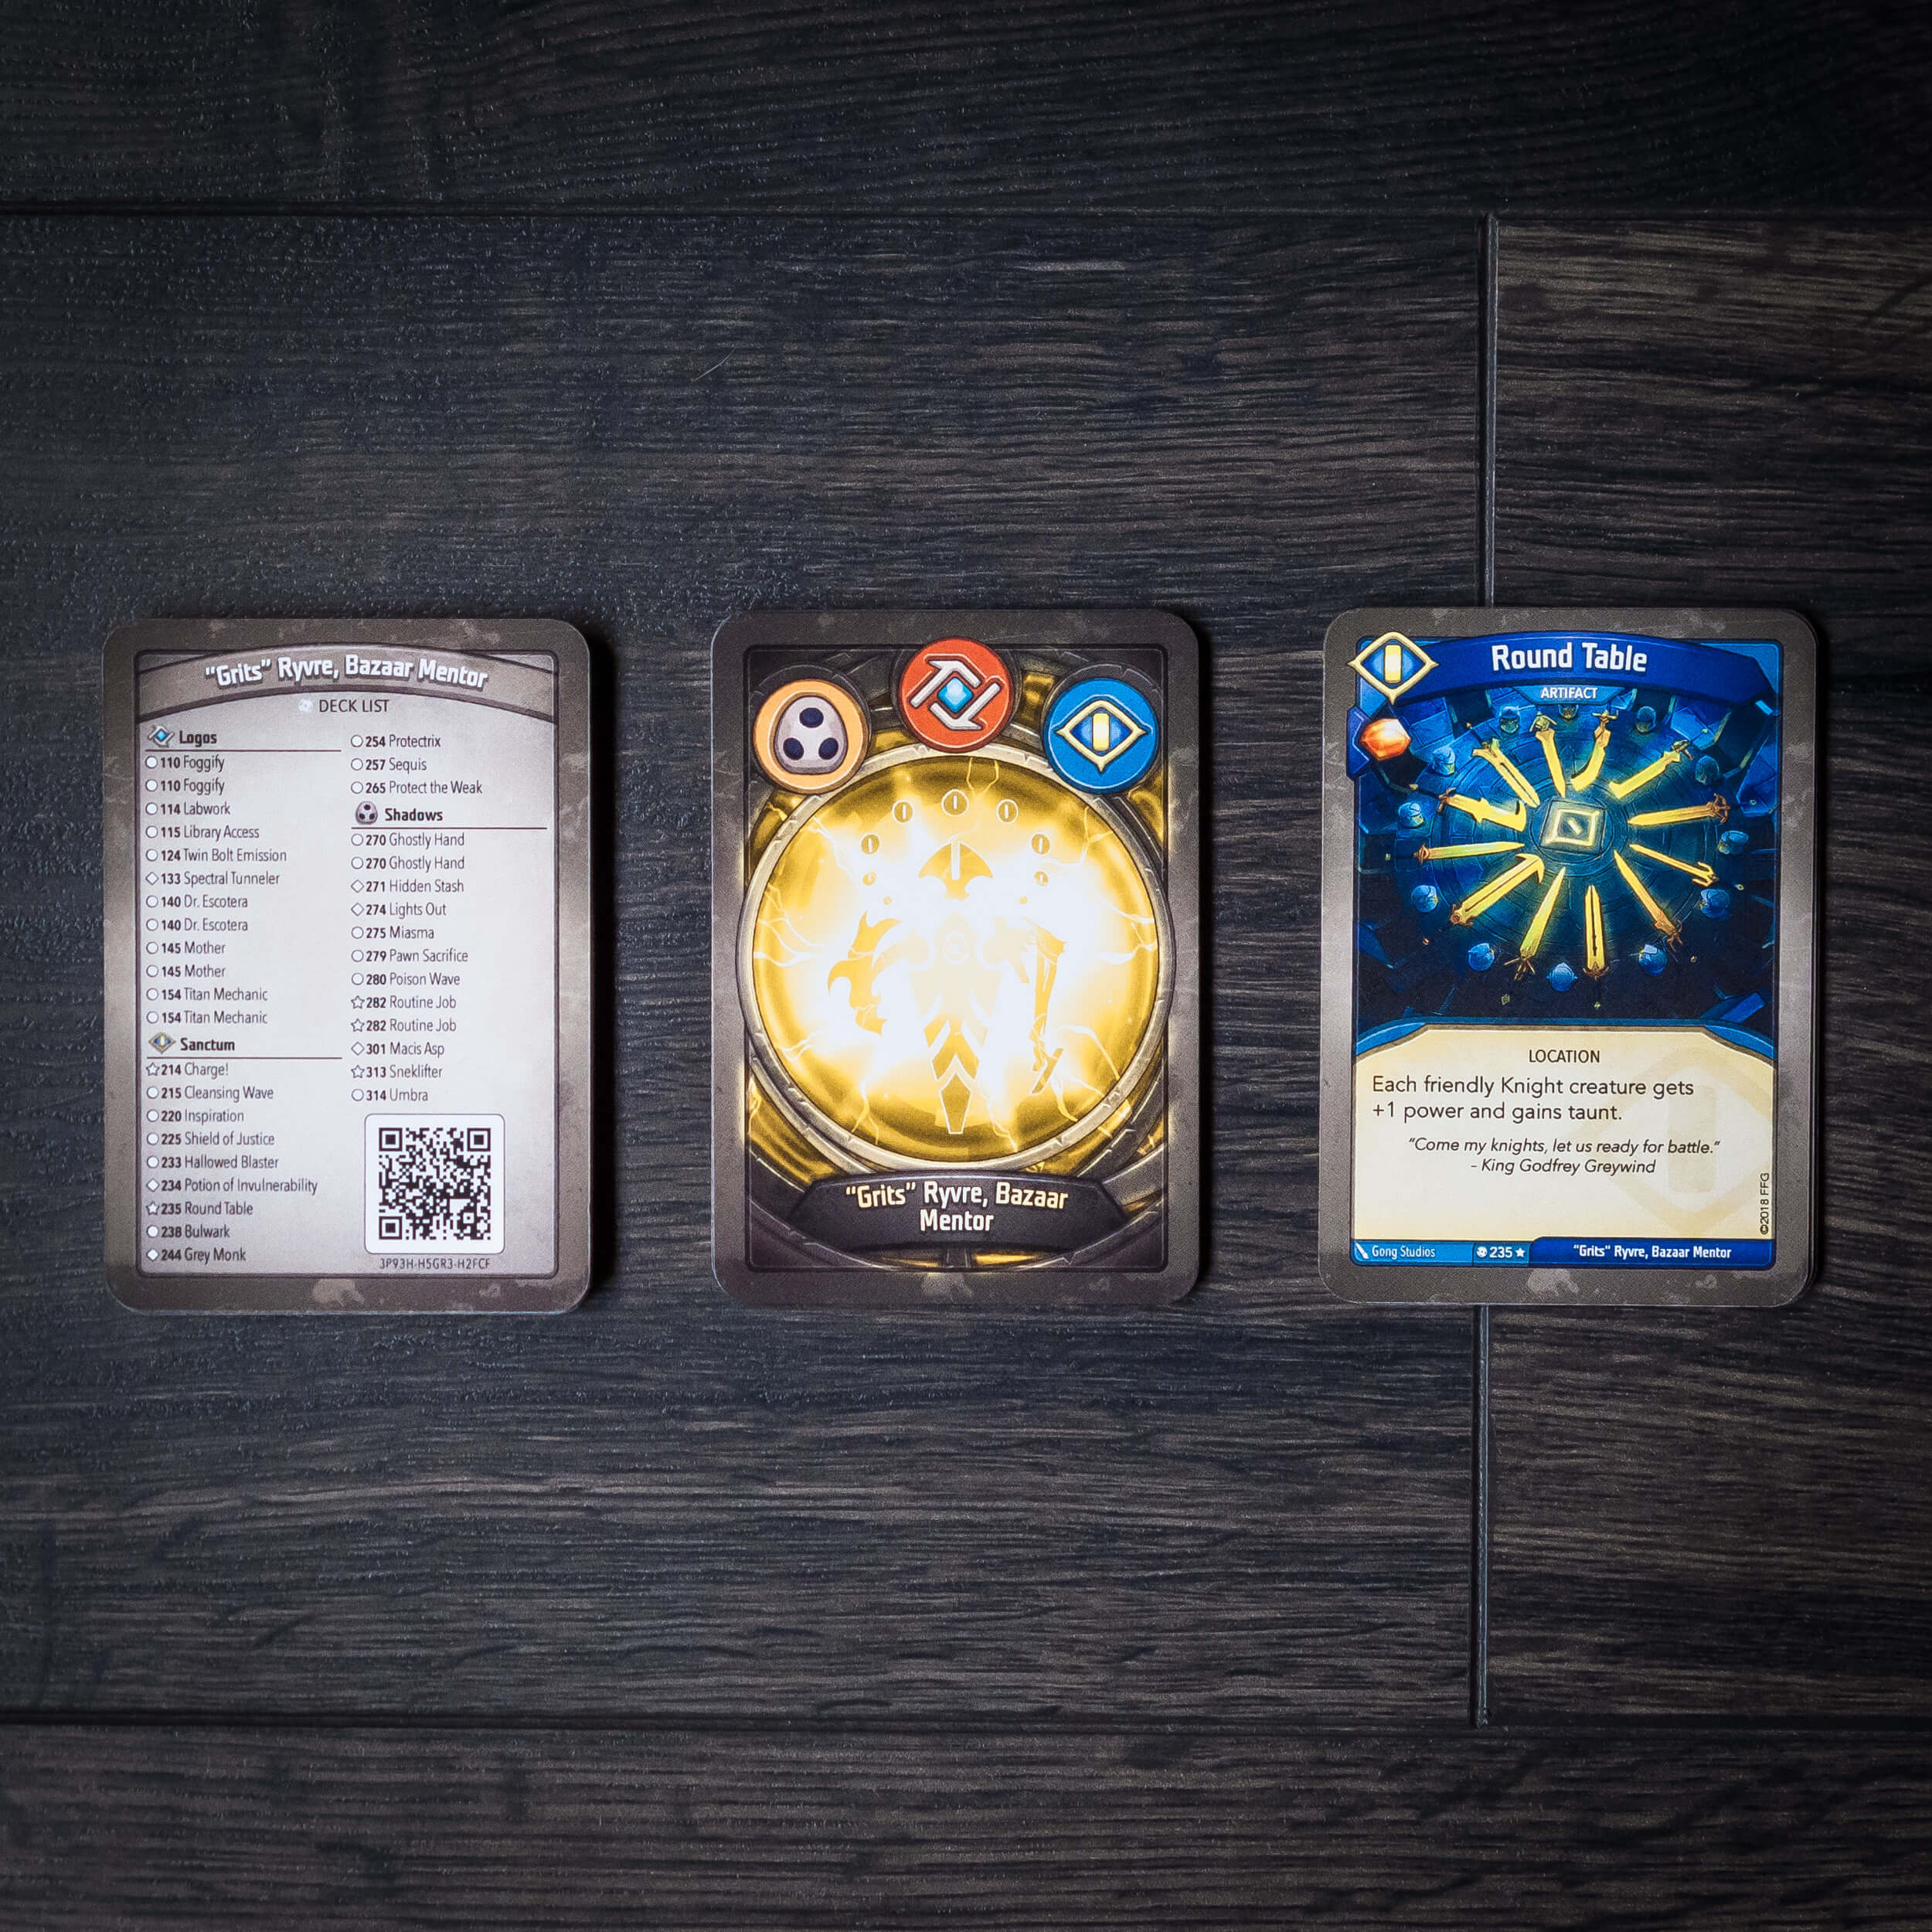 Grits' deck list on the left & card back in the middle - note that Grits' name is printed on the front of the Round Table artifact card.